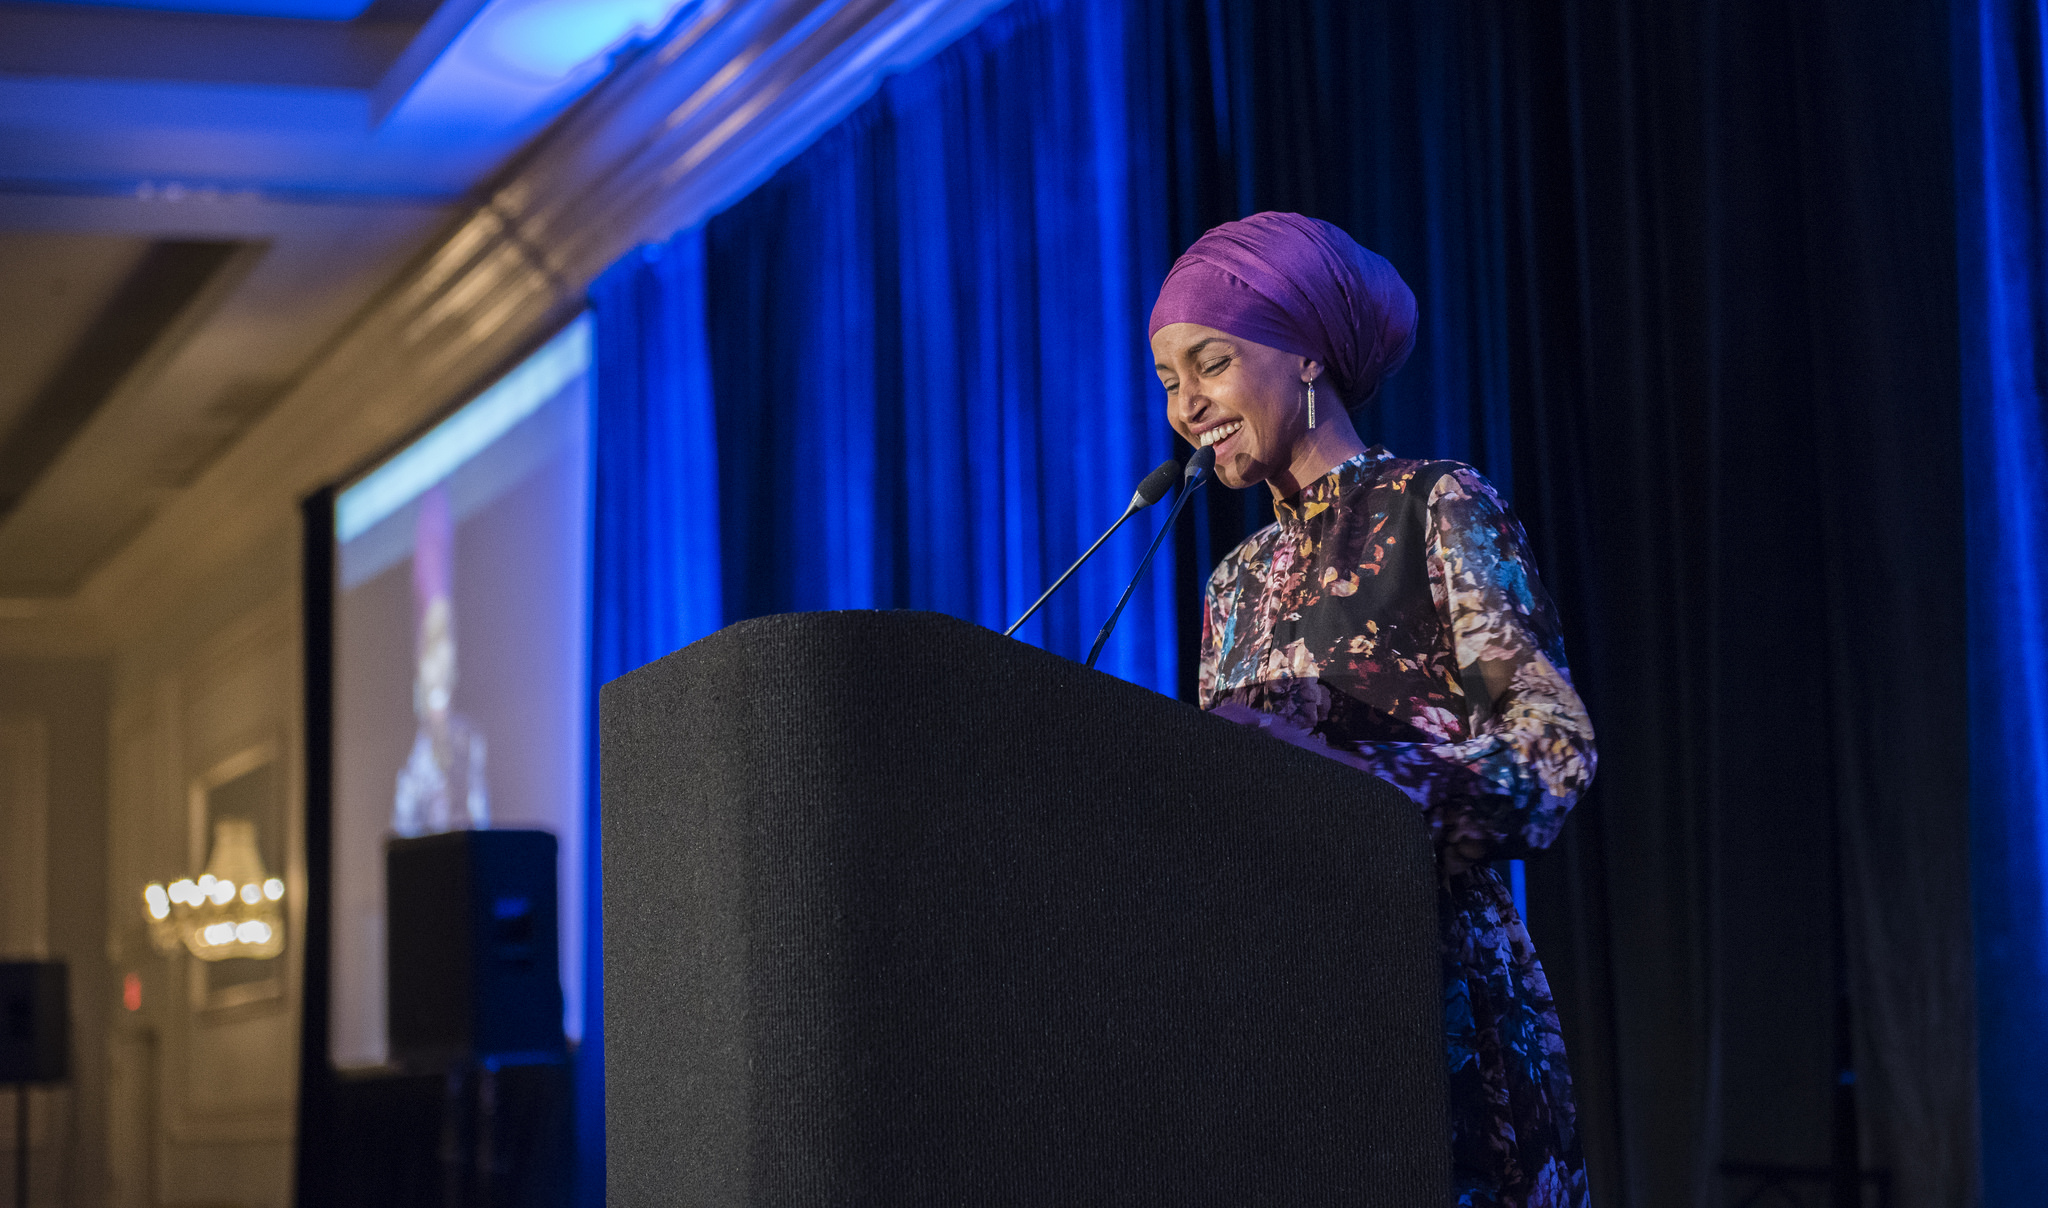 Pictured: Ilhan Omar delivers speech as the keynote speaker at the 13th Annual CAIR-Chicago banquet in 2017.